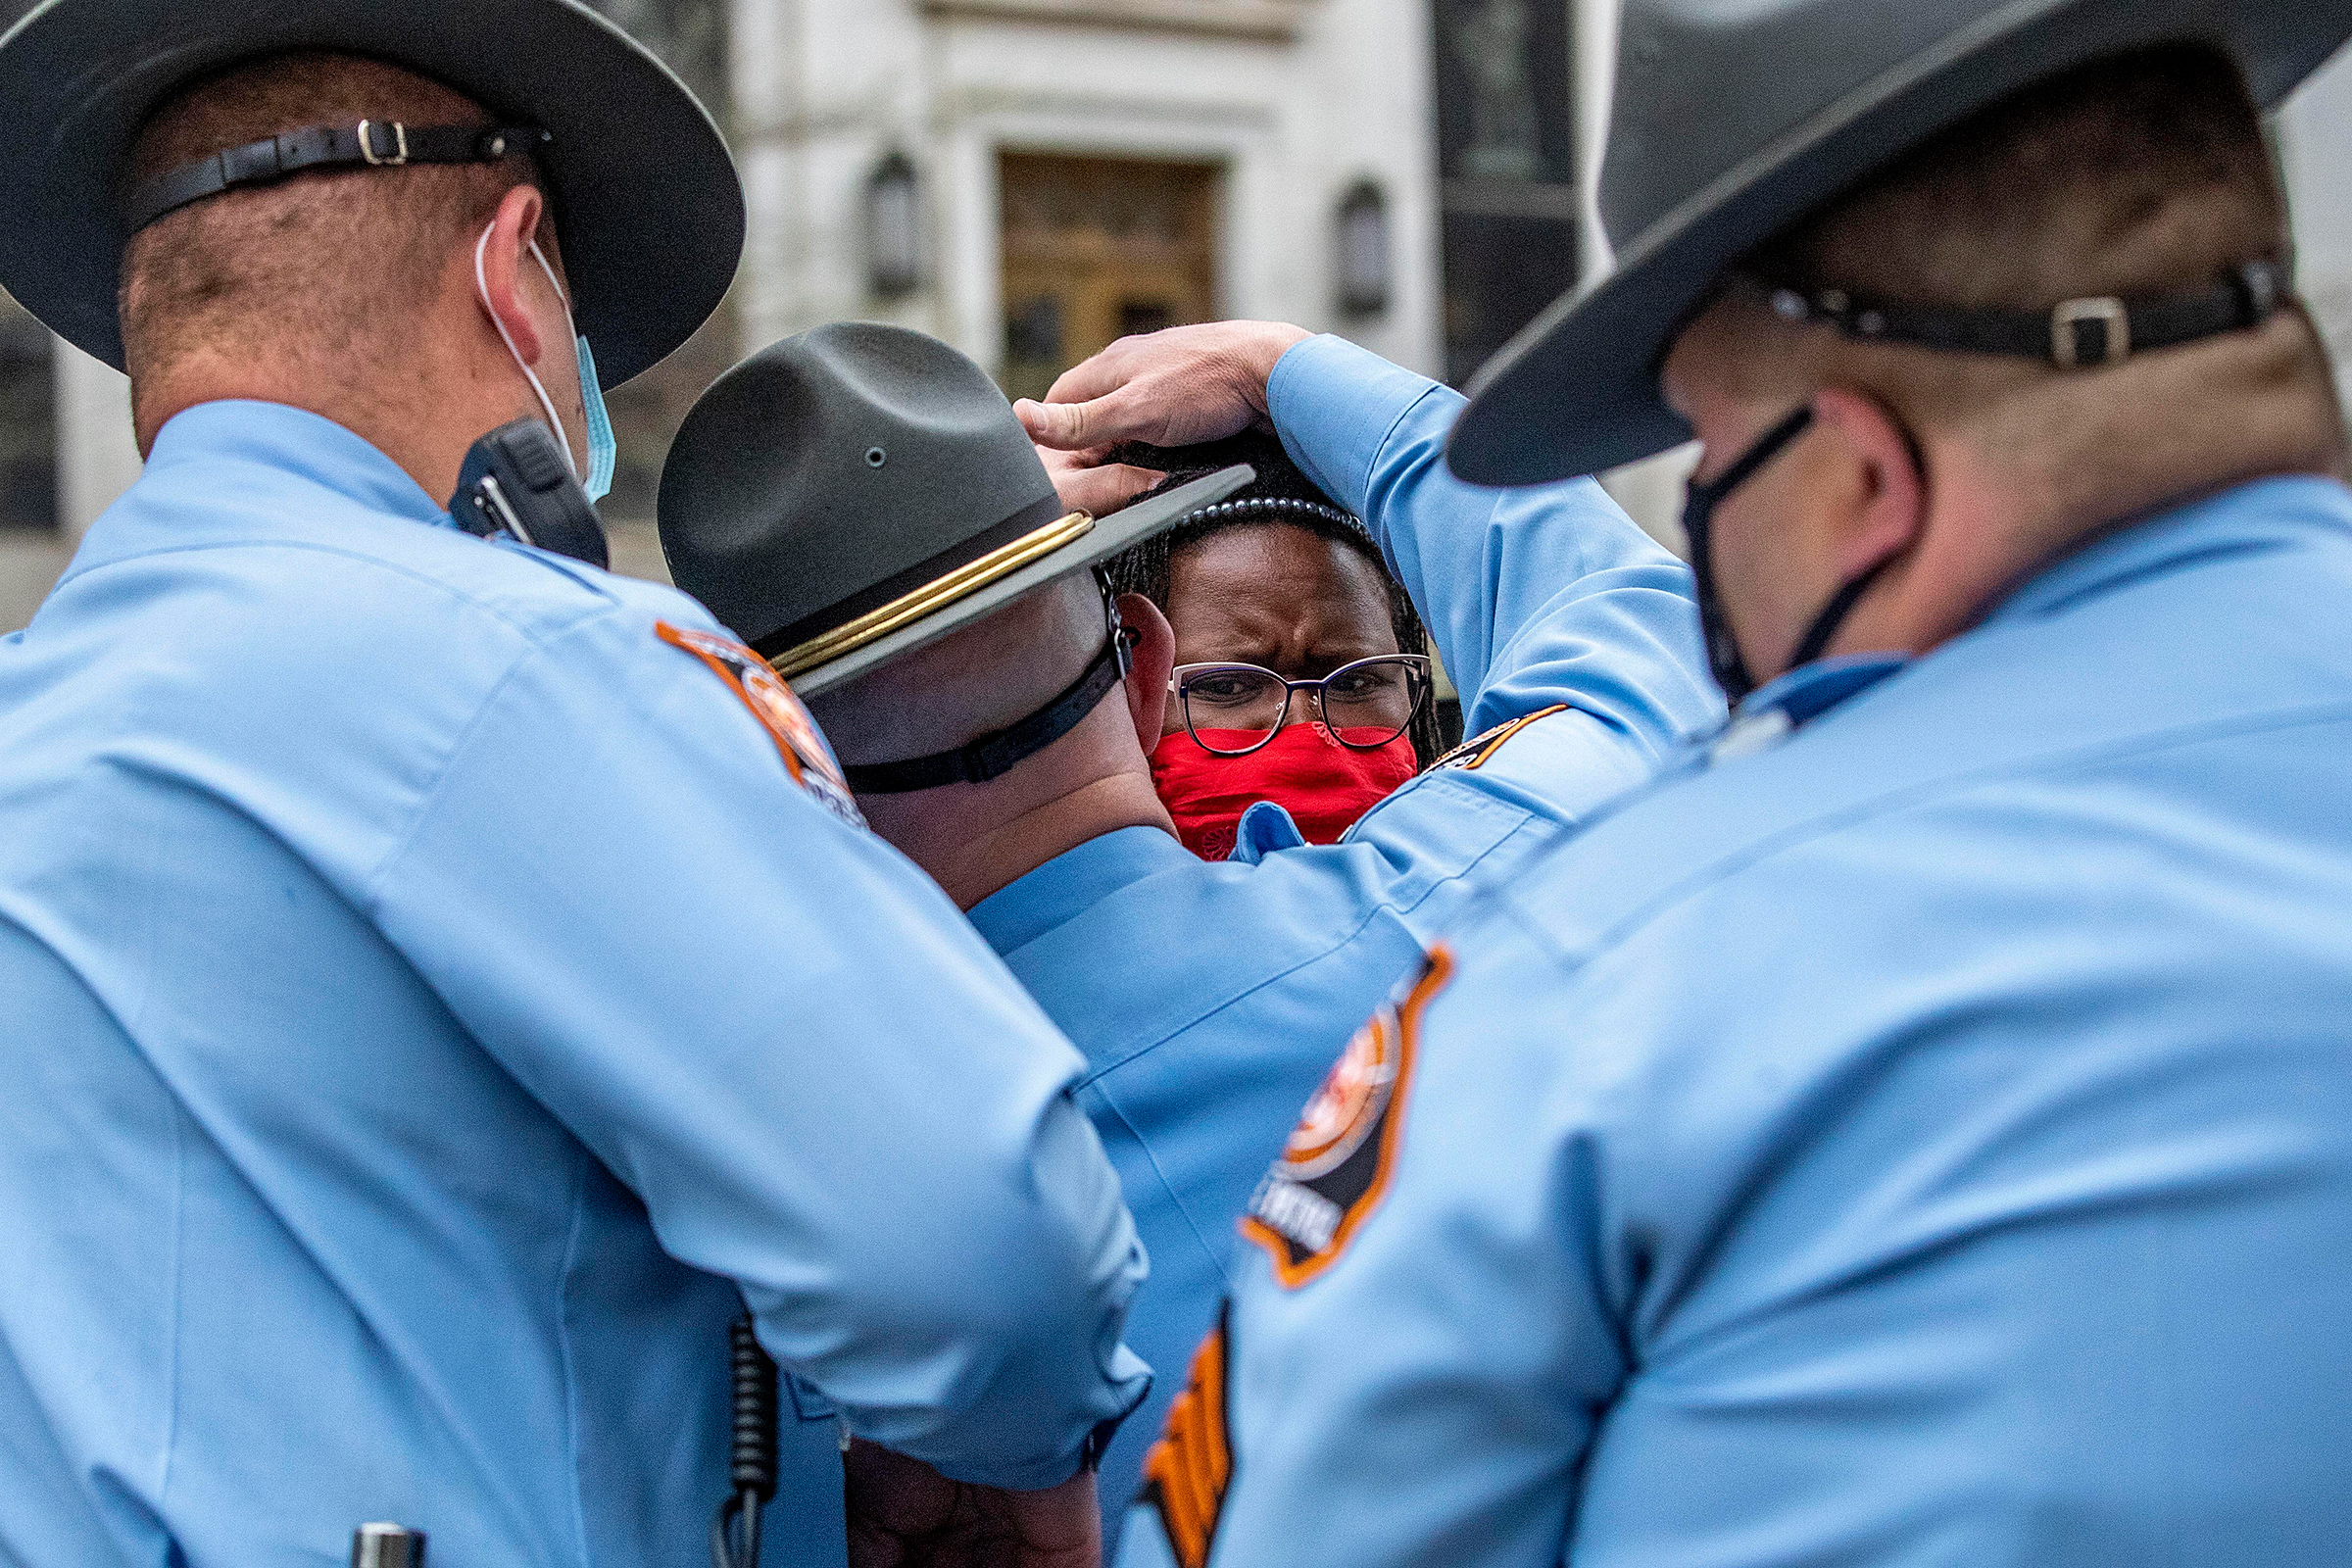 State Rep. Park Cannon, D-Atlanta, is placed into the back of a Georgia State Capitol patrol car after being arrested by Georgia State Troopers at the Georgia State Capitol Building in Atlanta, Thursday, March 25, 2021. Cannon was arrested by Capitol police after she attempted to knock on the door of the Gov. Brian Kemp office during his remarks after he signed into law a sweeping Republican-sponsored overhaul of state elections that includes new restrictions on voting by mail and greater legislative control over how elections are run.